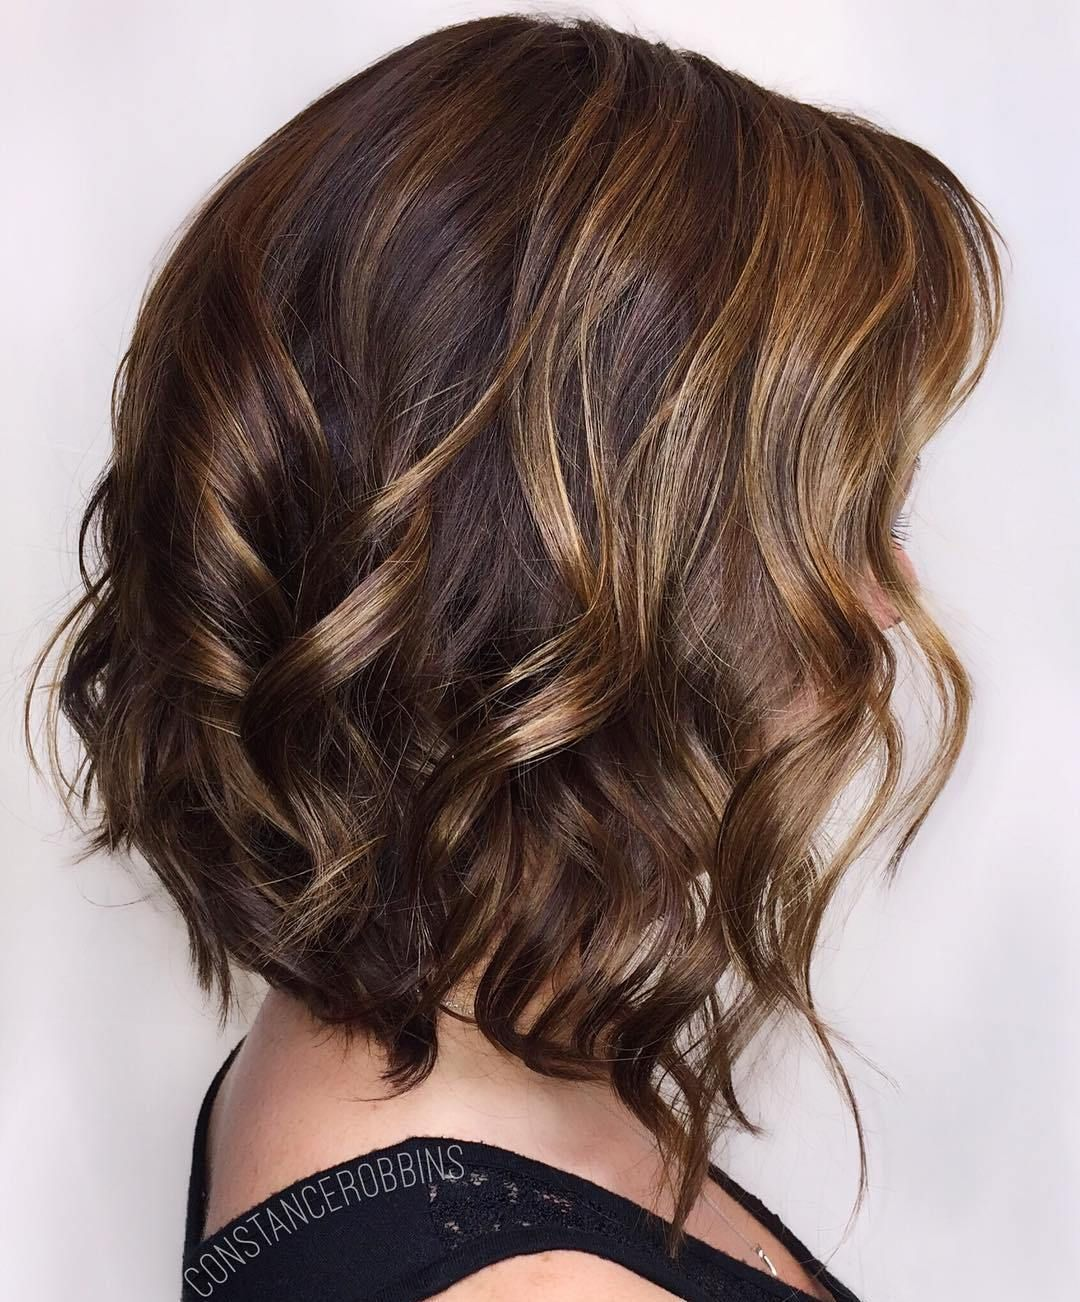 56 Adorable Short Ombre Hairstyles For Women To Give You A New Look Lightbrownhair In 2020 Short Ombre Hair Hair Styles Short Hair Balayage